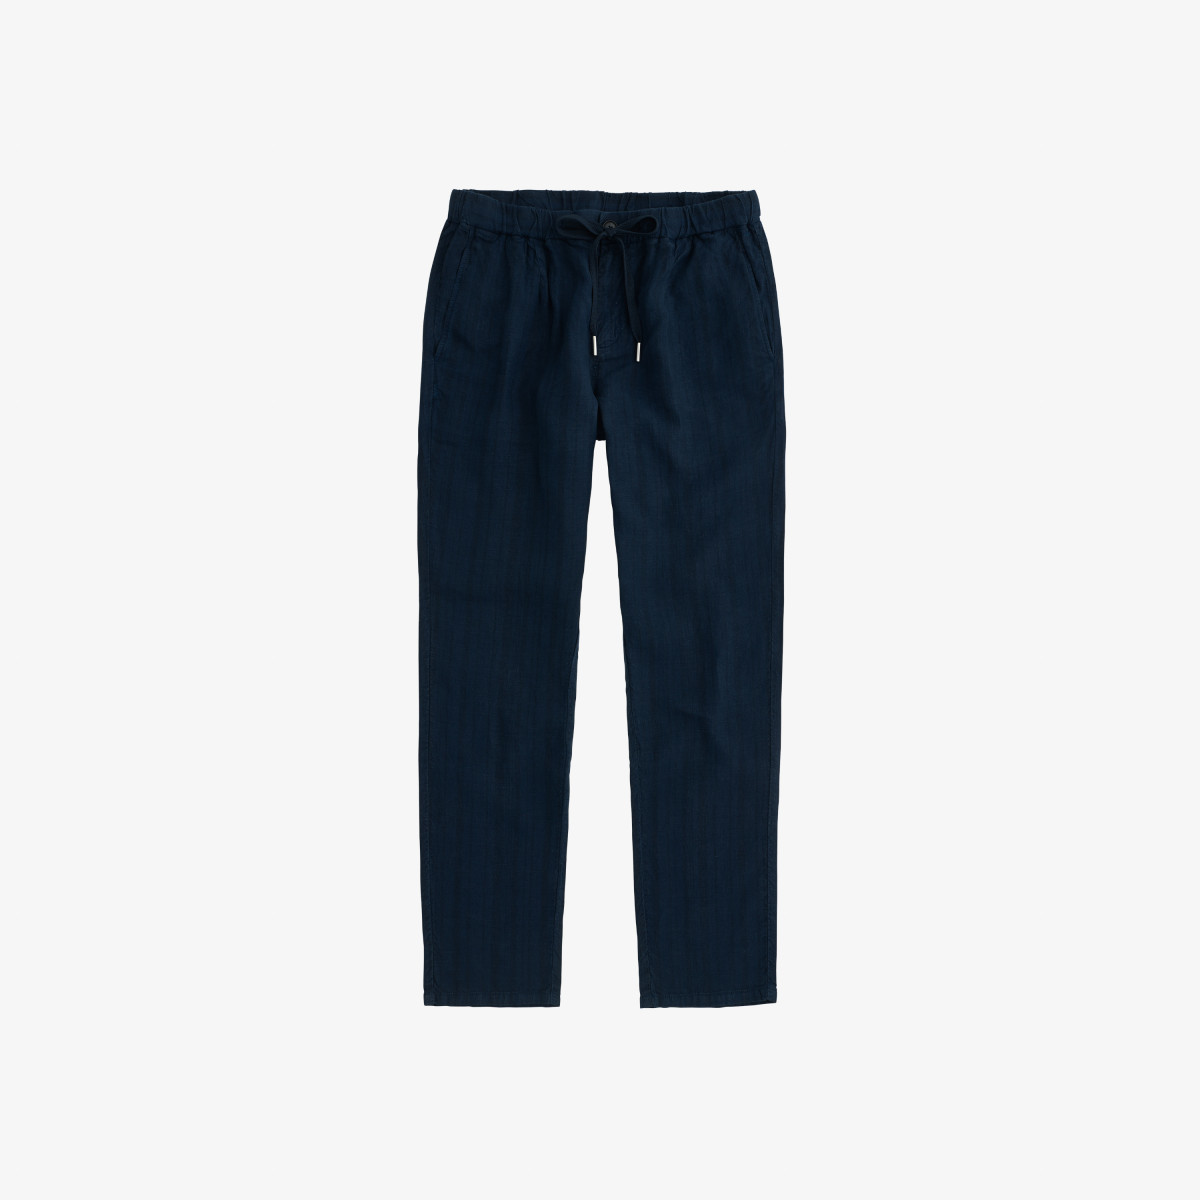 PANT COULISSE FANCY NAVY BLUE